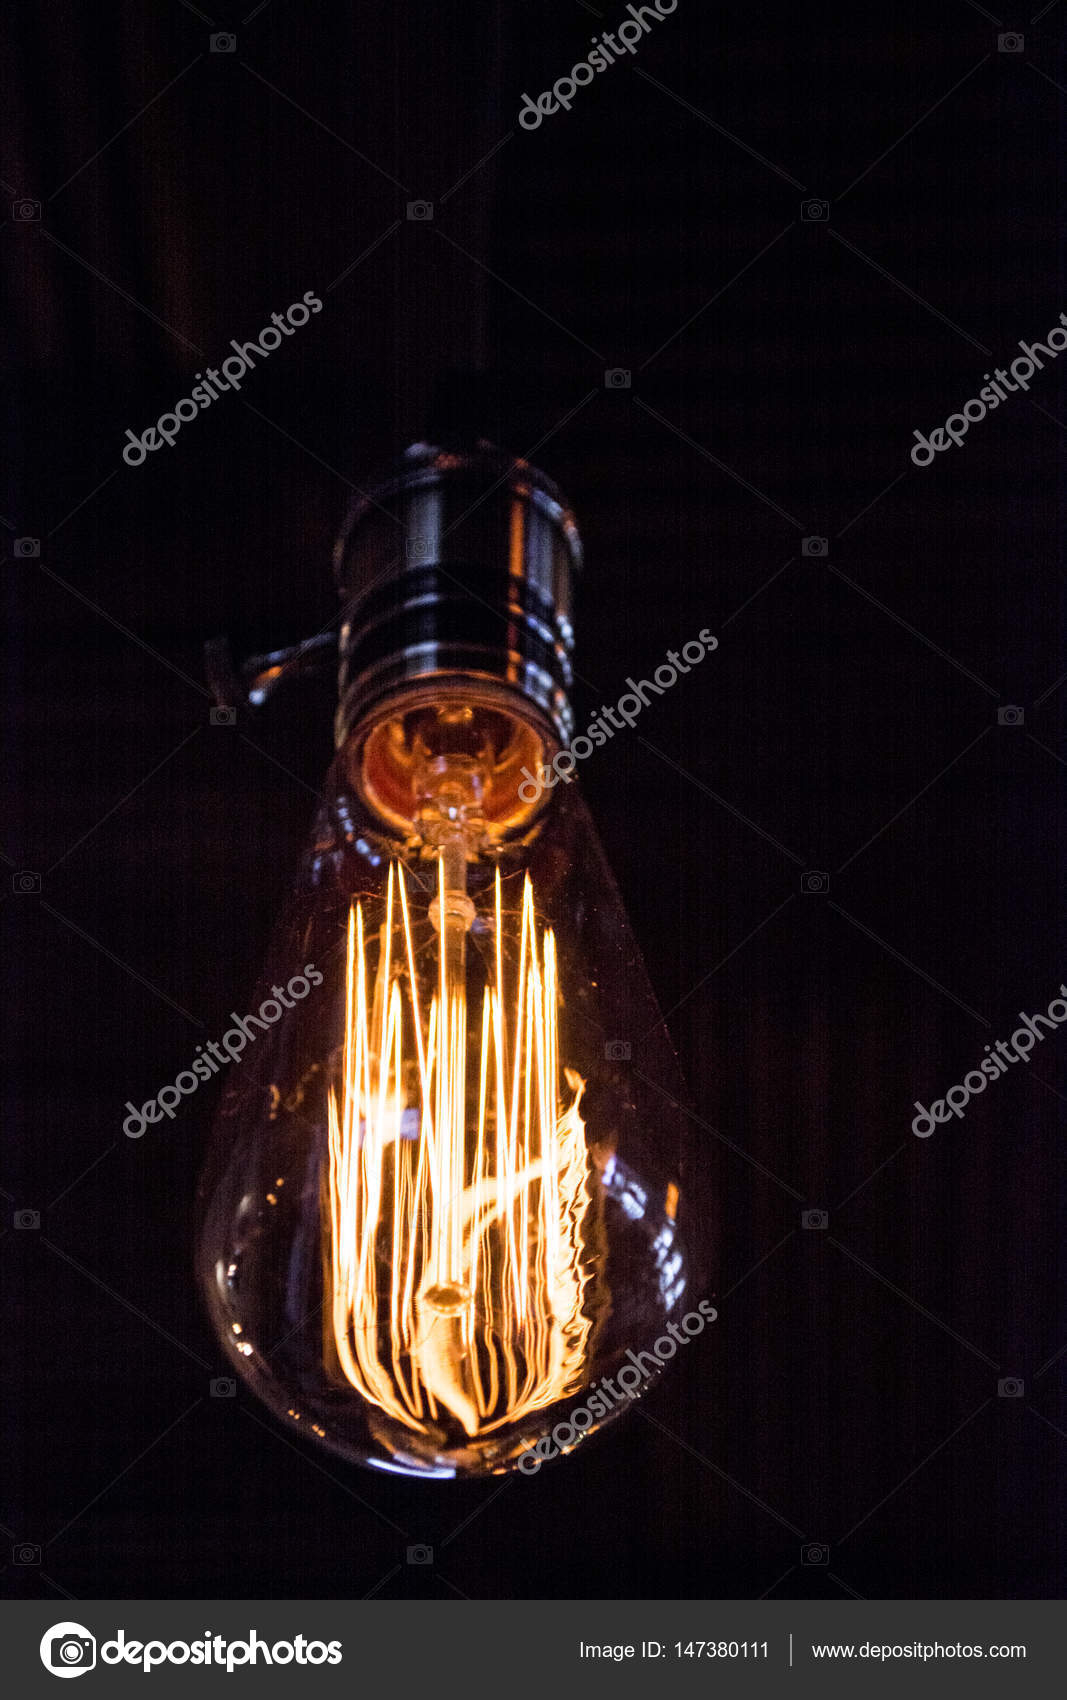 On a black background light bulb tesla place for the text these edison style bulbs are beautiful but are high consume electricity also